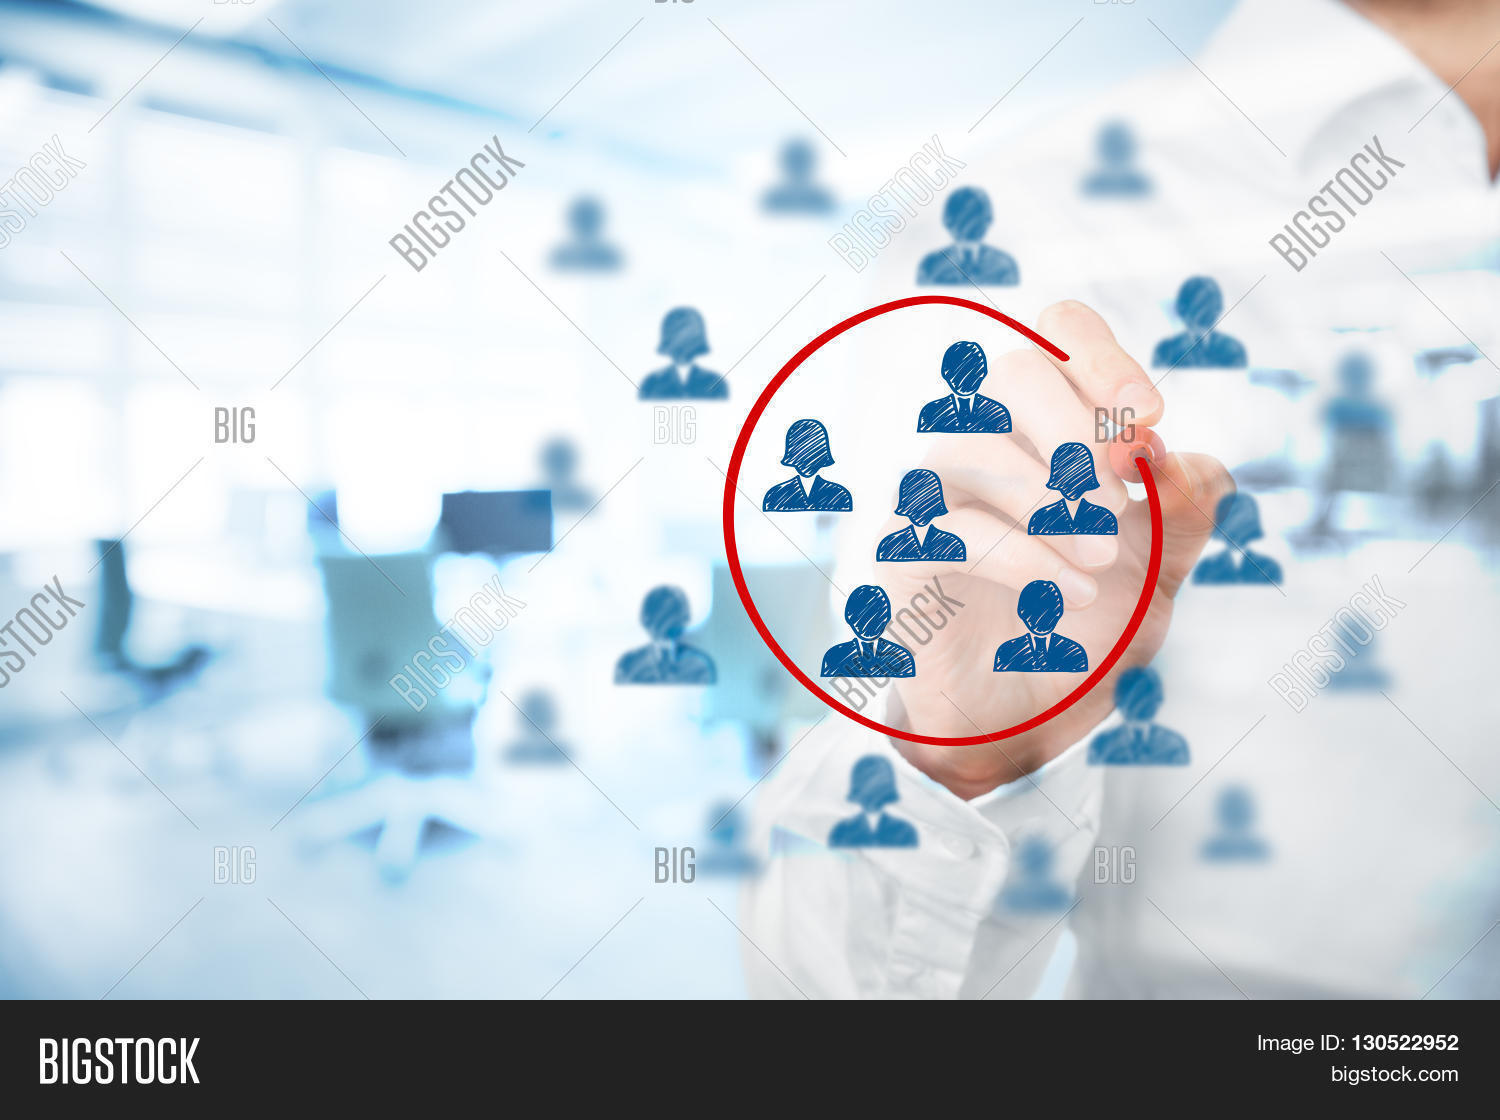 Marketing Segmentation Management Image & Photo | Bigstock